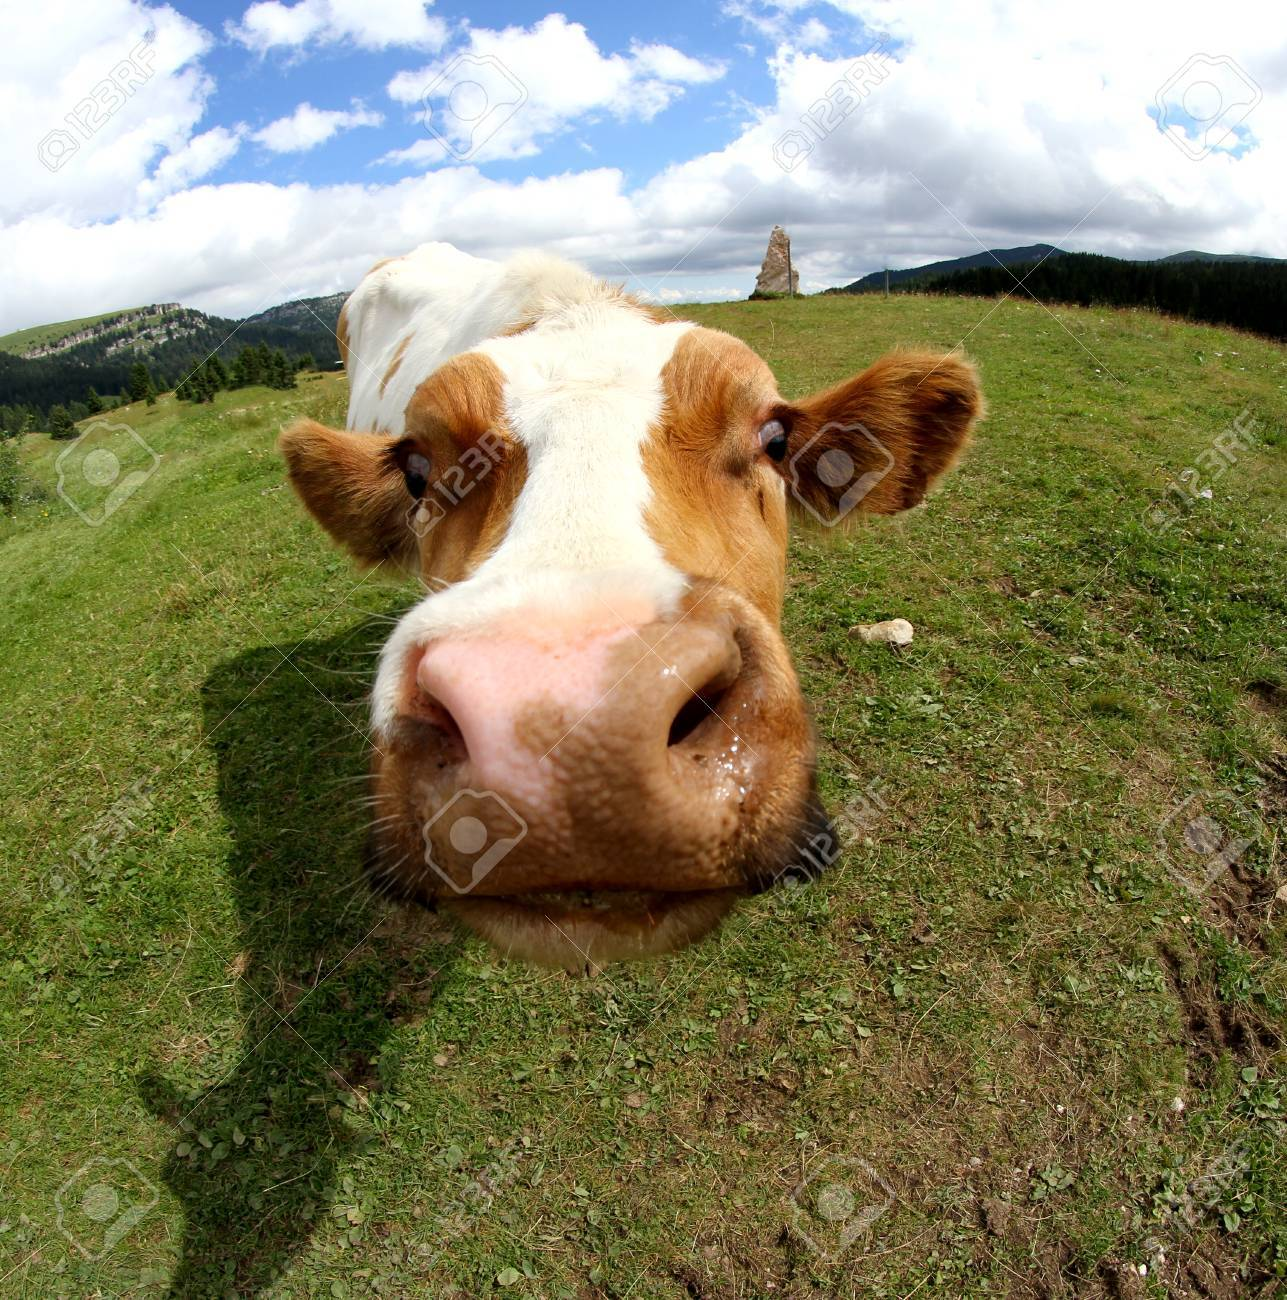 funny cow muzzle photographed with fisheye lens from very close